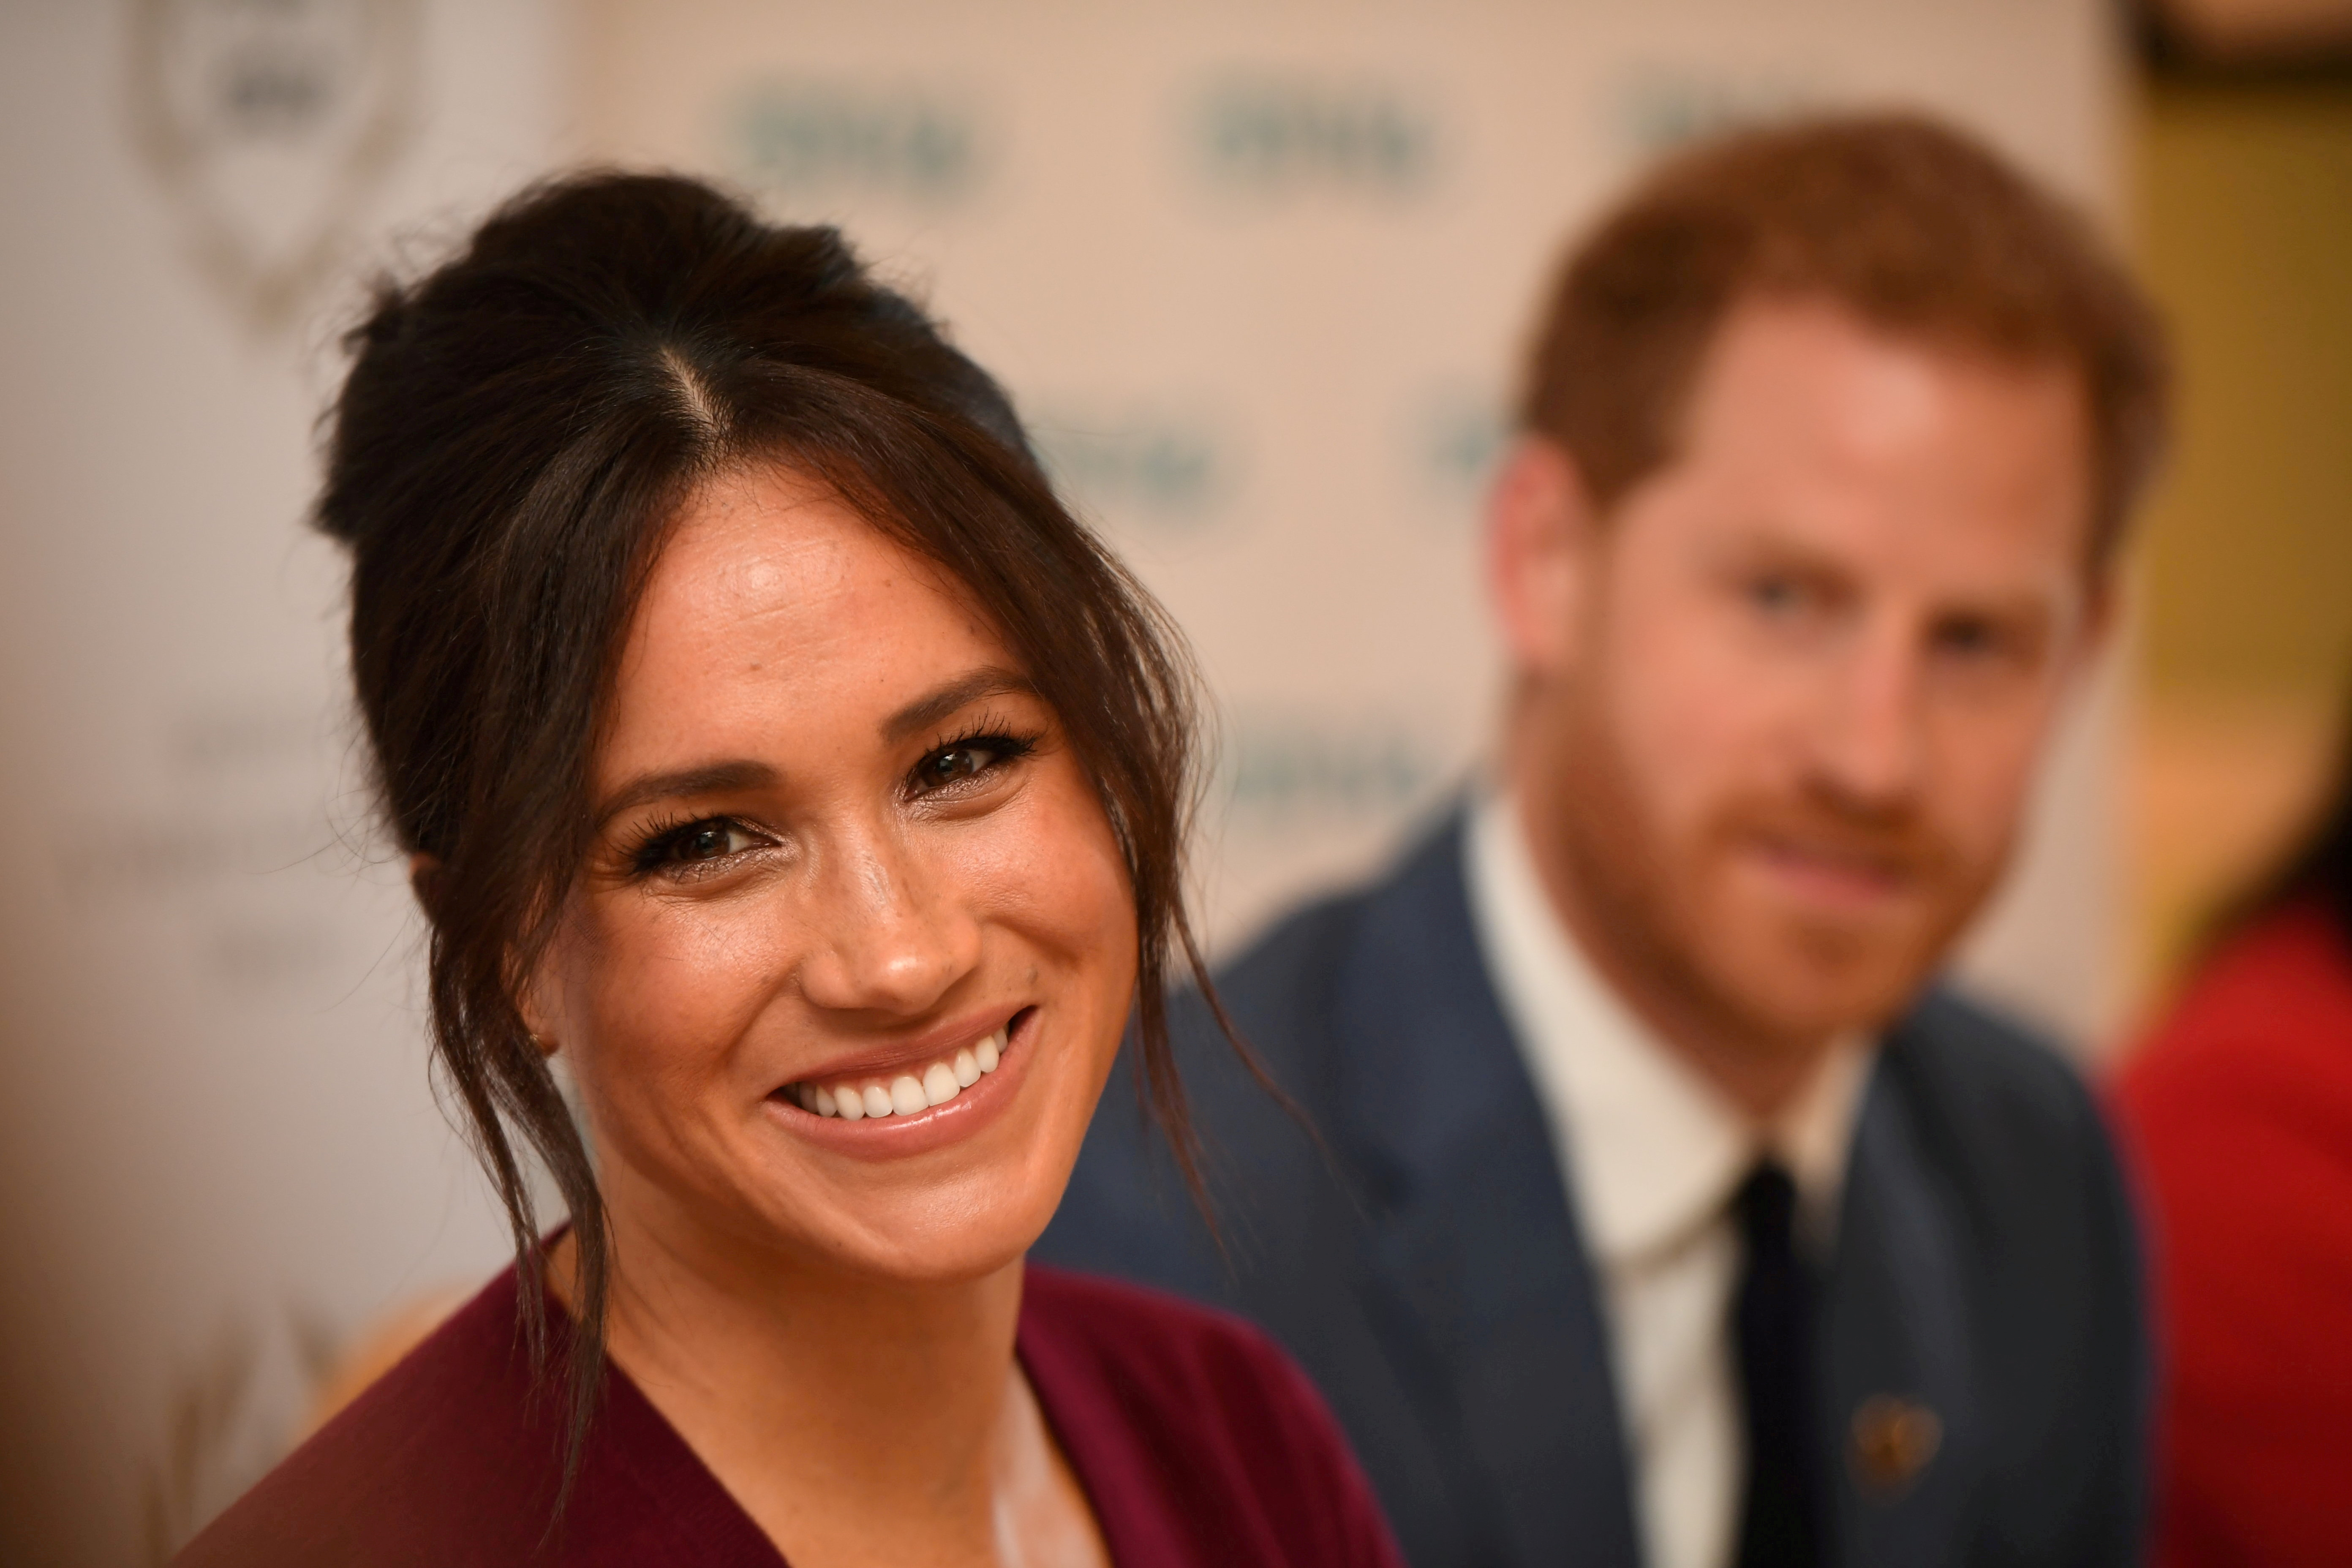 FILE PHOTO: Britain's Meghan, the Duchess of Sussex, and Prince Harry, Duke of Sussex, attend a roundtable discussion on gender equality at Windsor Castle, Windsor, Britain October 25, 2019. Jeremy Selwyn/Pool via Reuters/File Photo